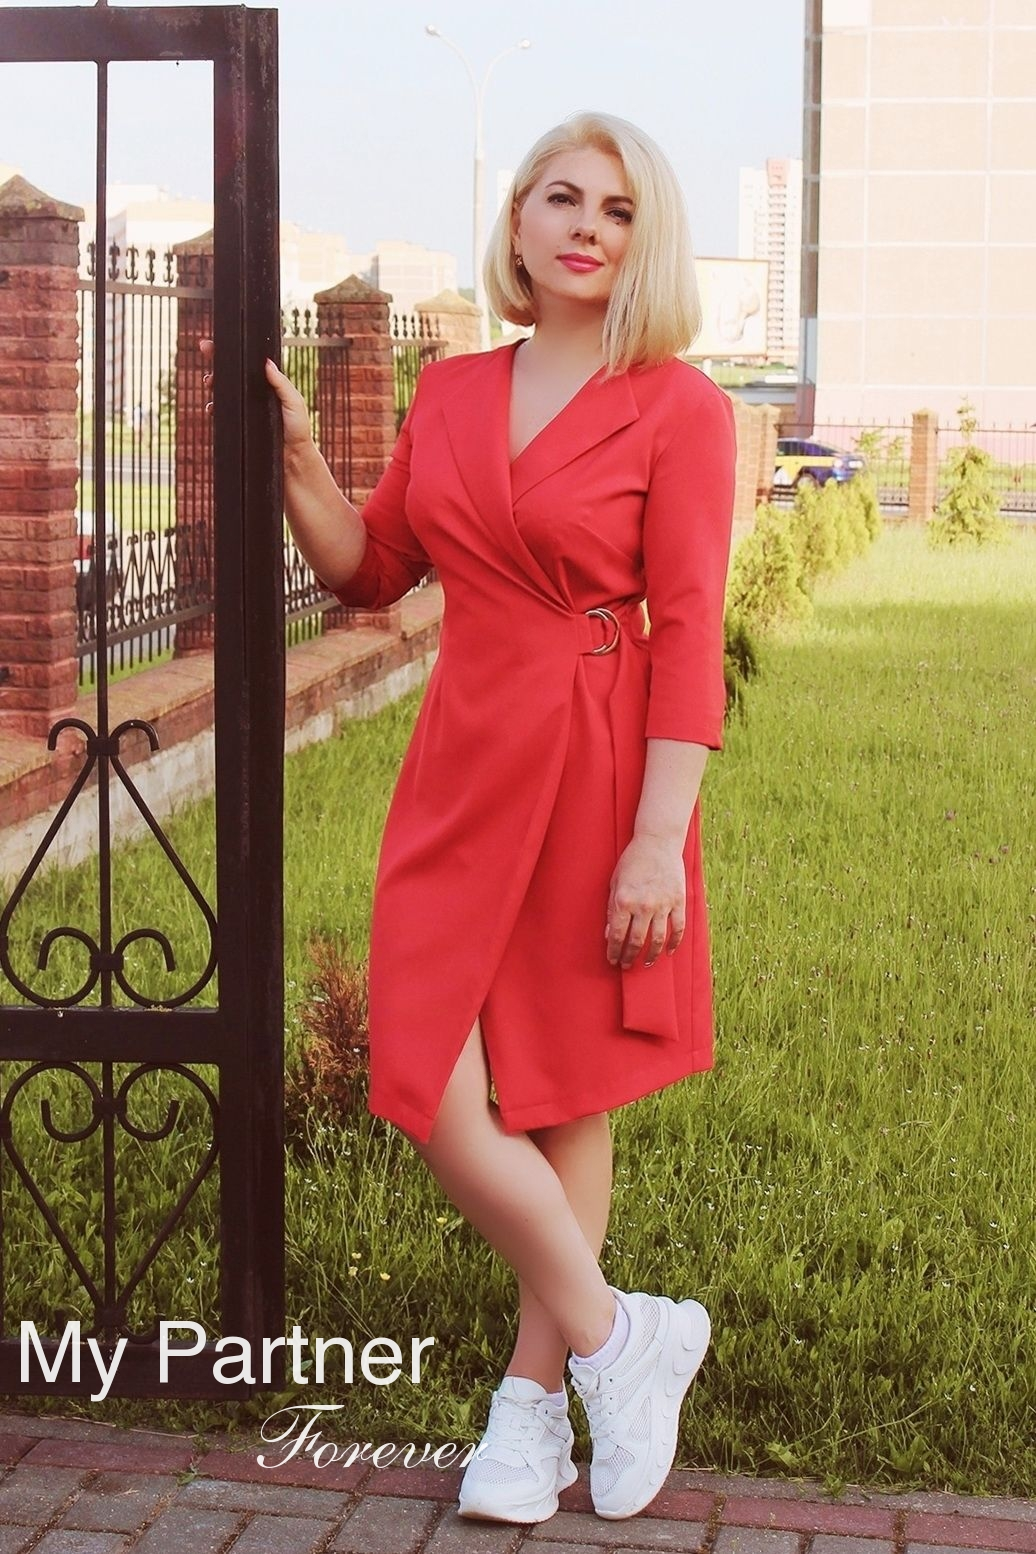 Datingsite to Meet Charming Belarusian Lady Alla from Grodno, Belarus